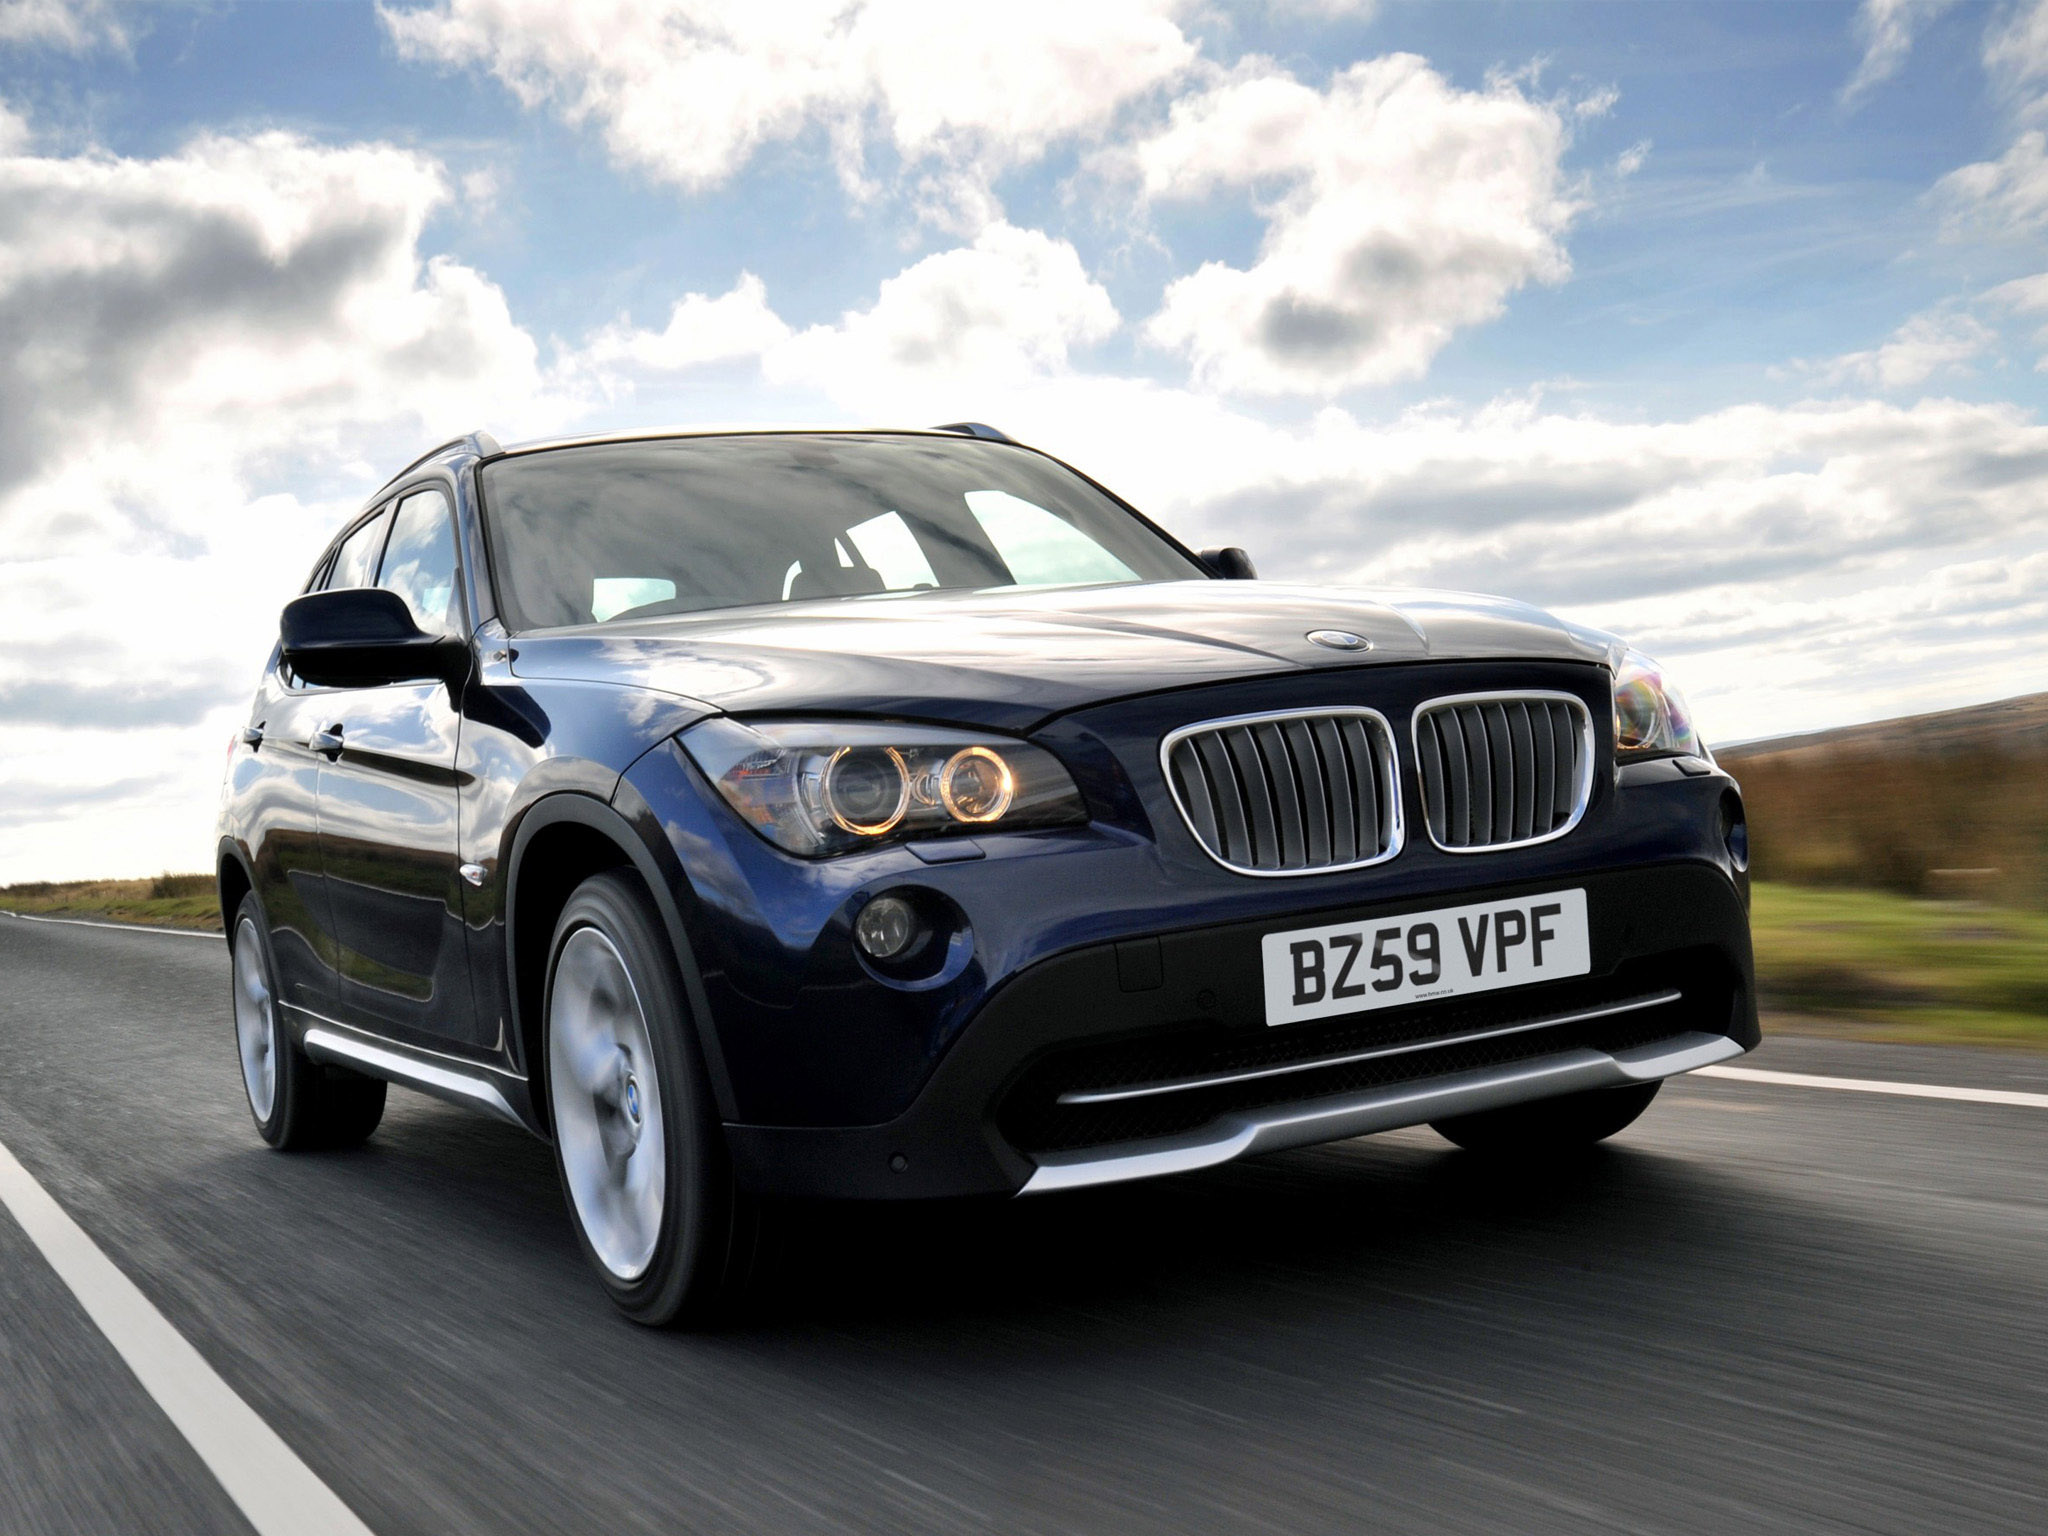 2009 bmw x1 pictures information and specs auto. Black Bedroom Furniture Sets. Home Design Ideas